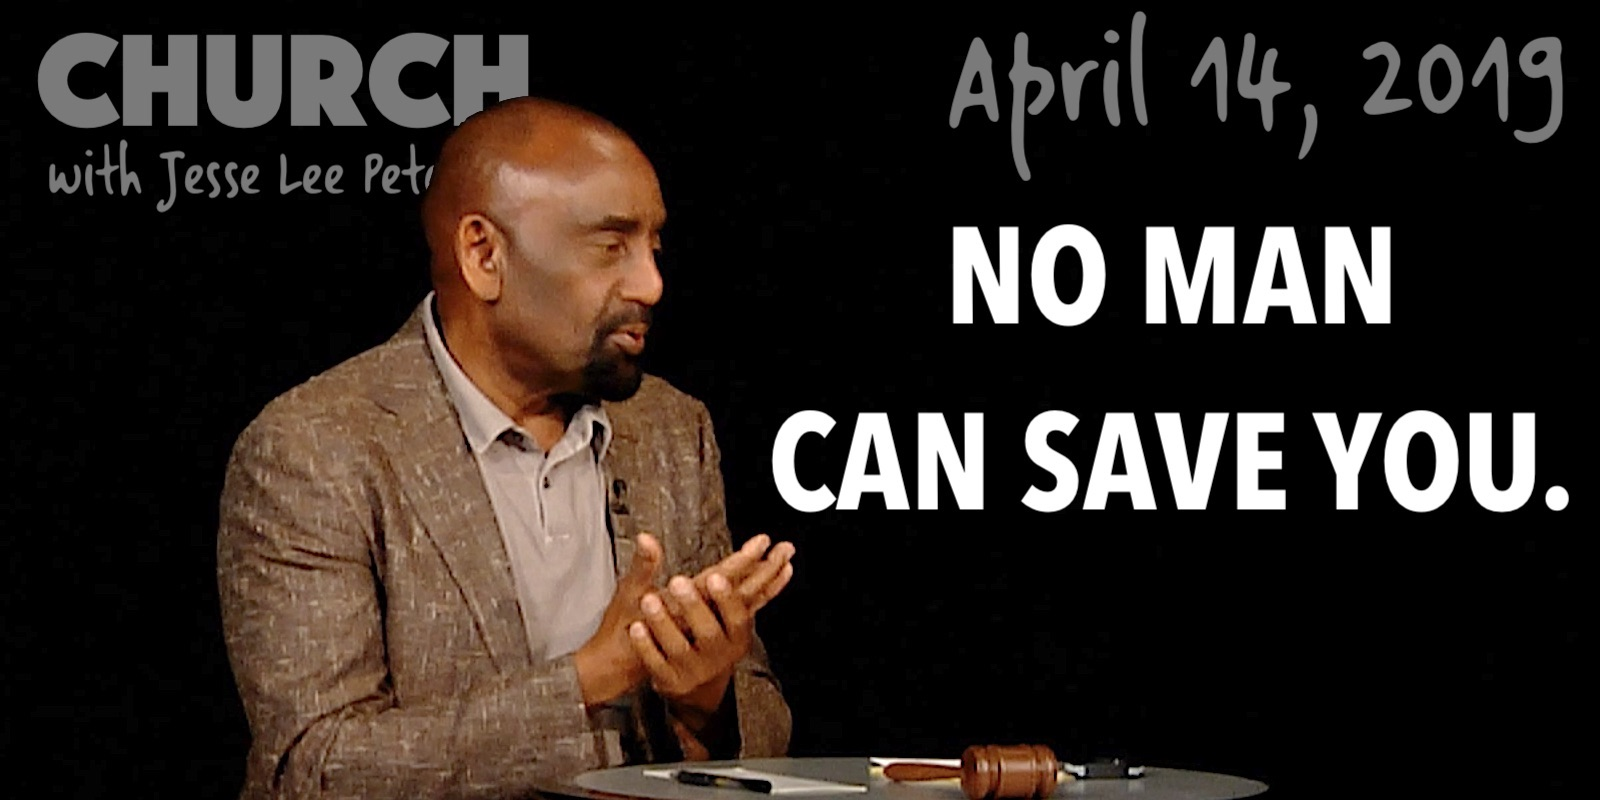 No Man Can Save You. (Church, Apr 14, 2019)